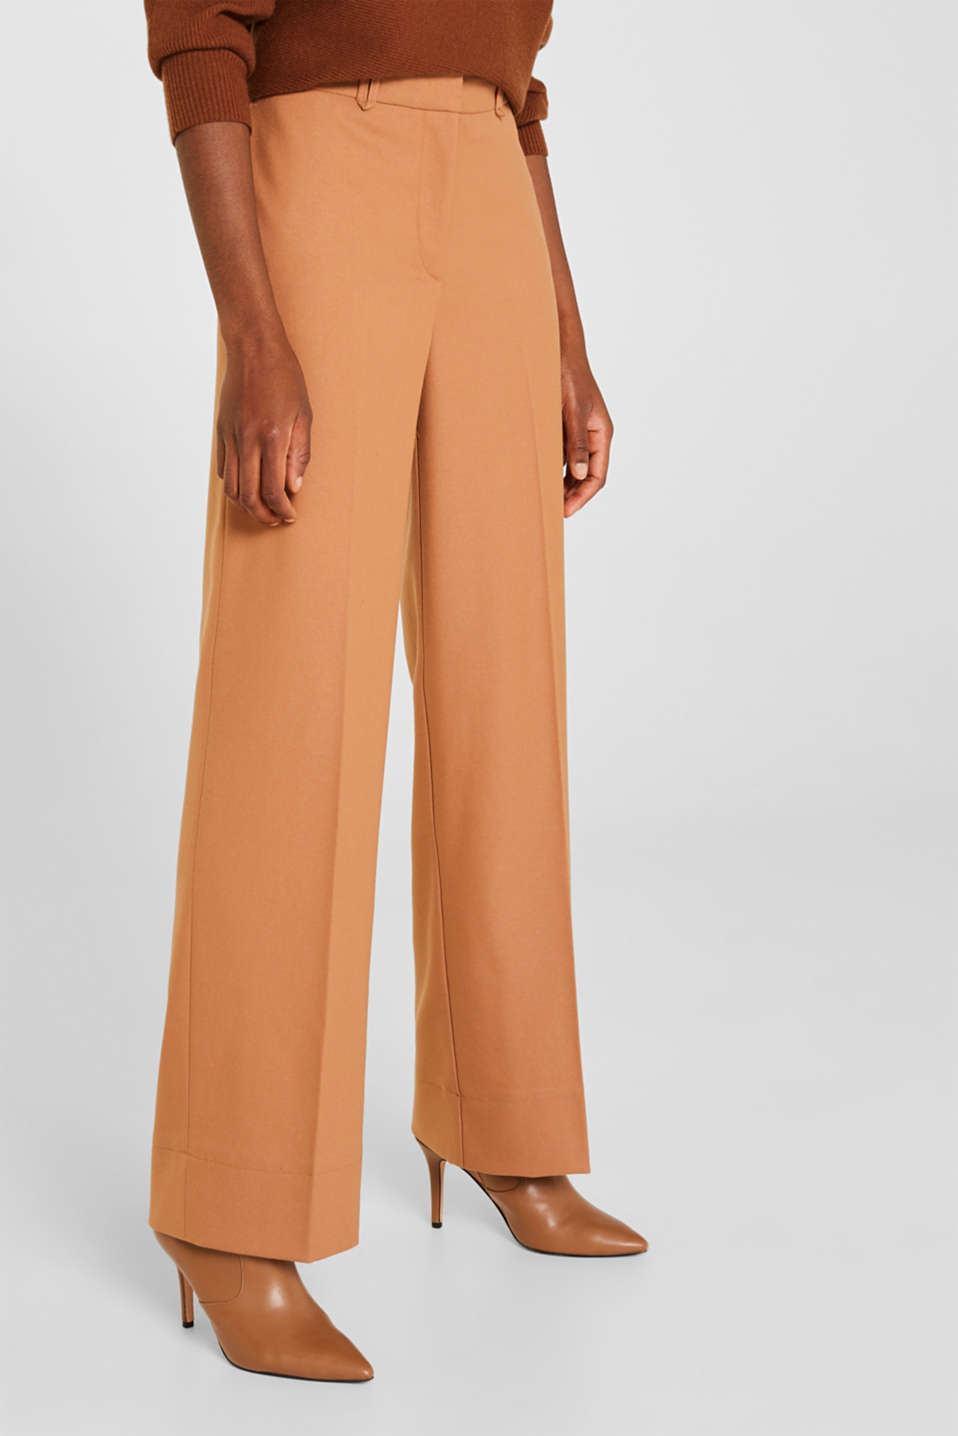 High-waist stretch trousers with a wide leg, CAMEL, detail image number 5